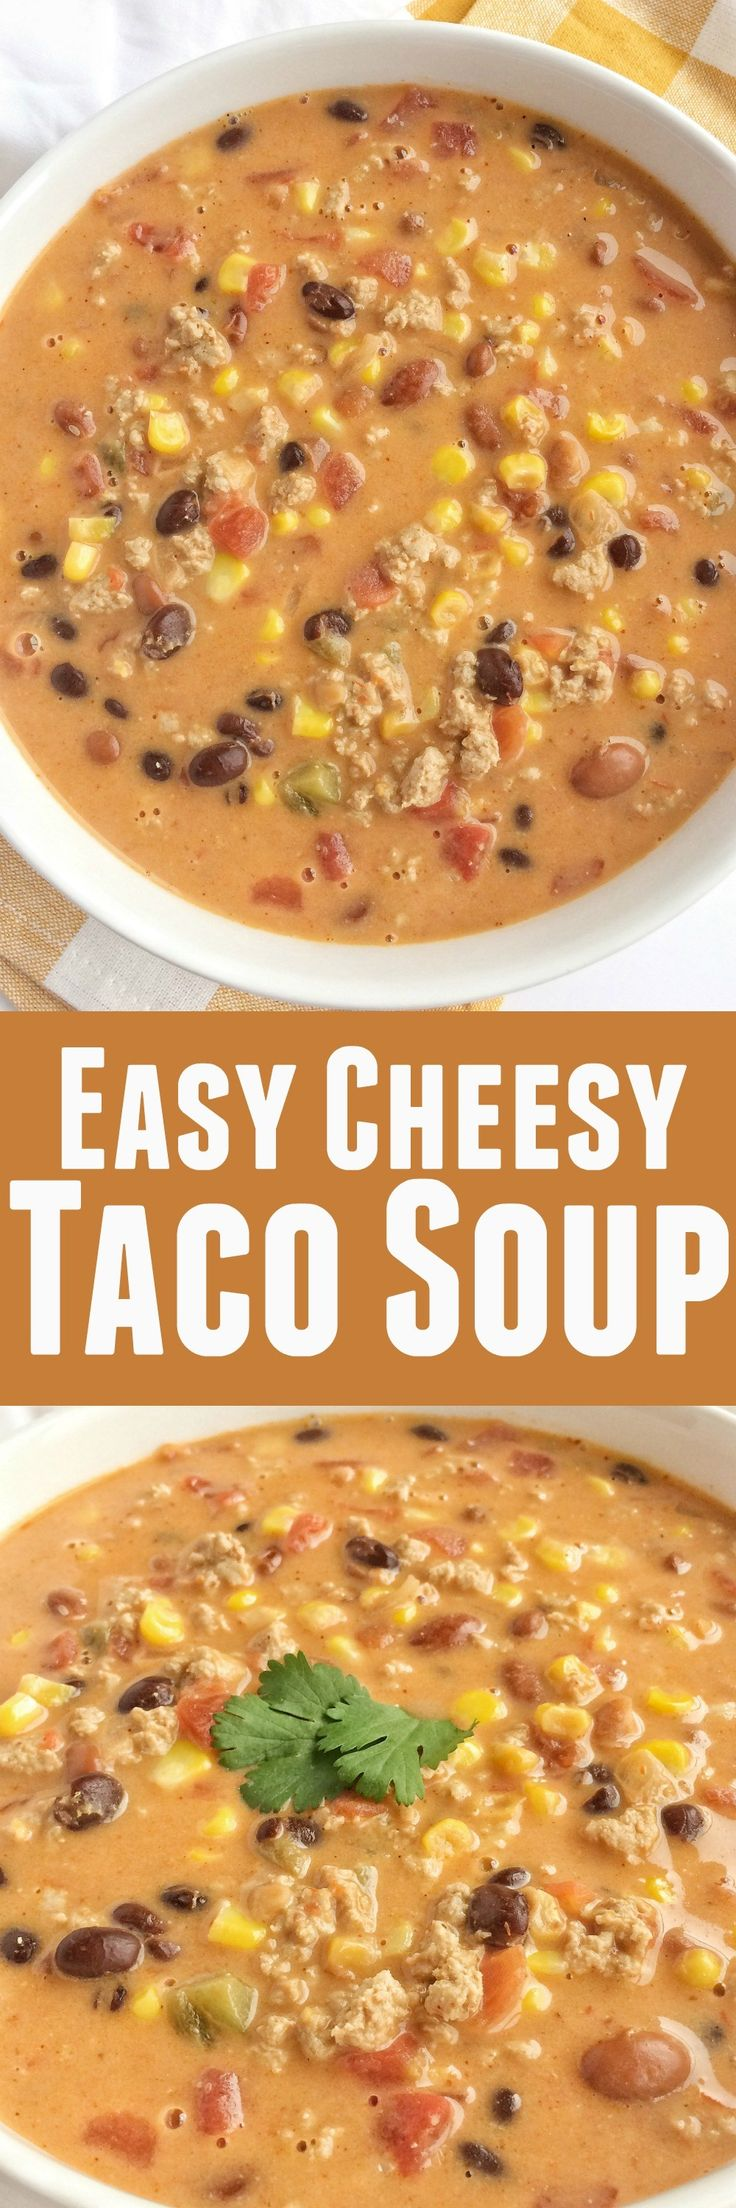 Thischeesy taco soup is so easy. Brown some ground turkey with spices, add 6 cans, and some Velveeta cheese. Super creamy, cheesy, delicious, and quick dinner!